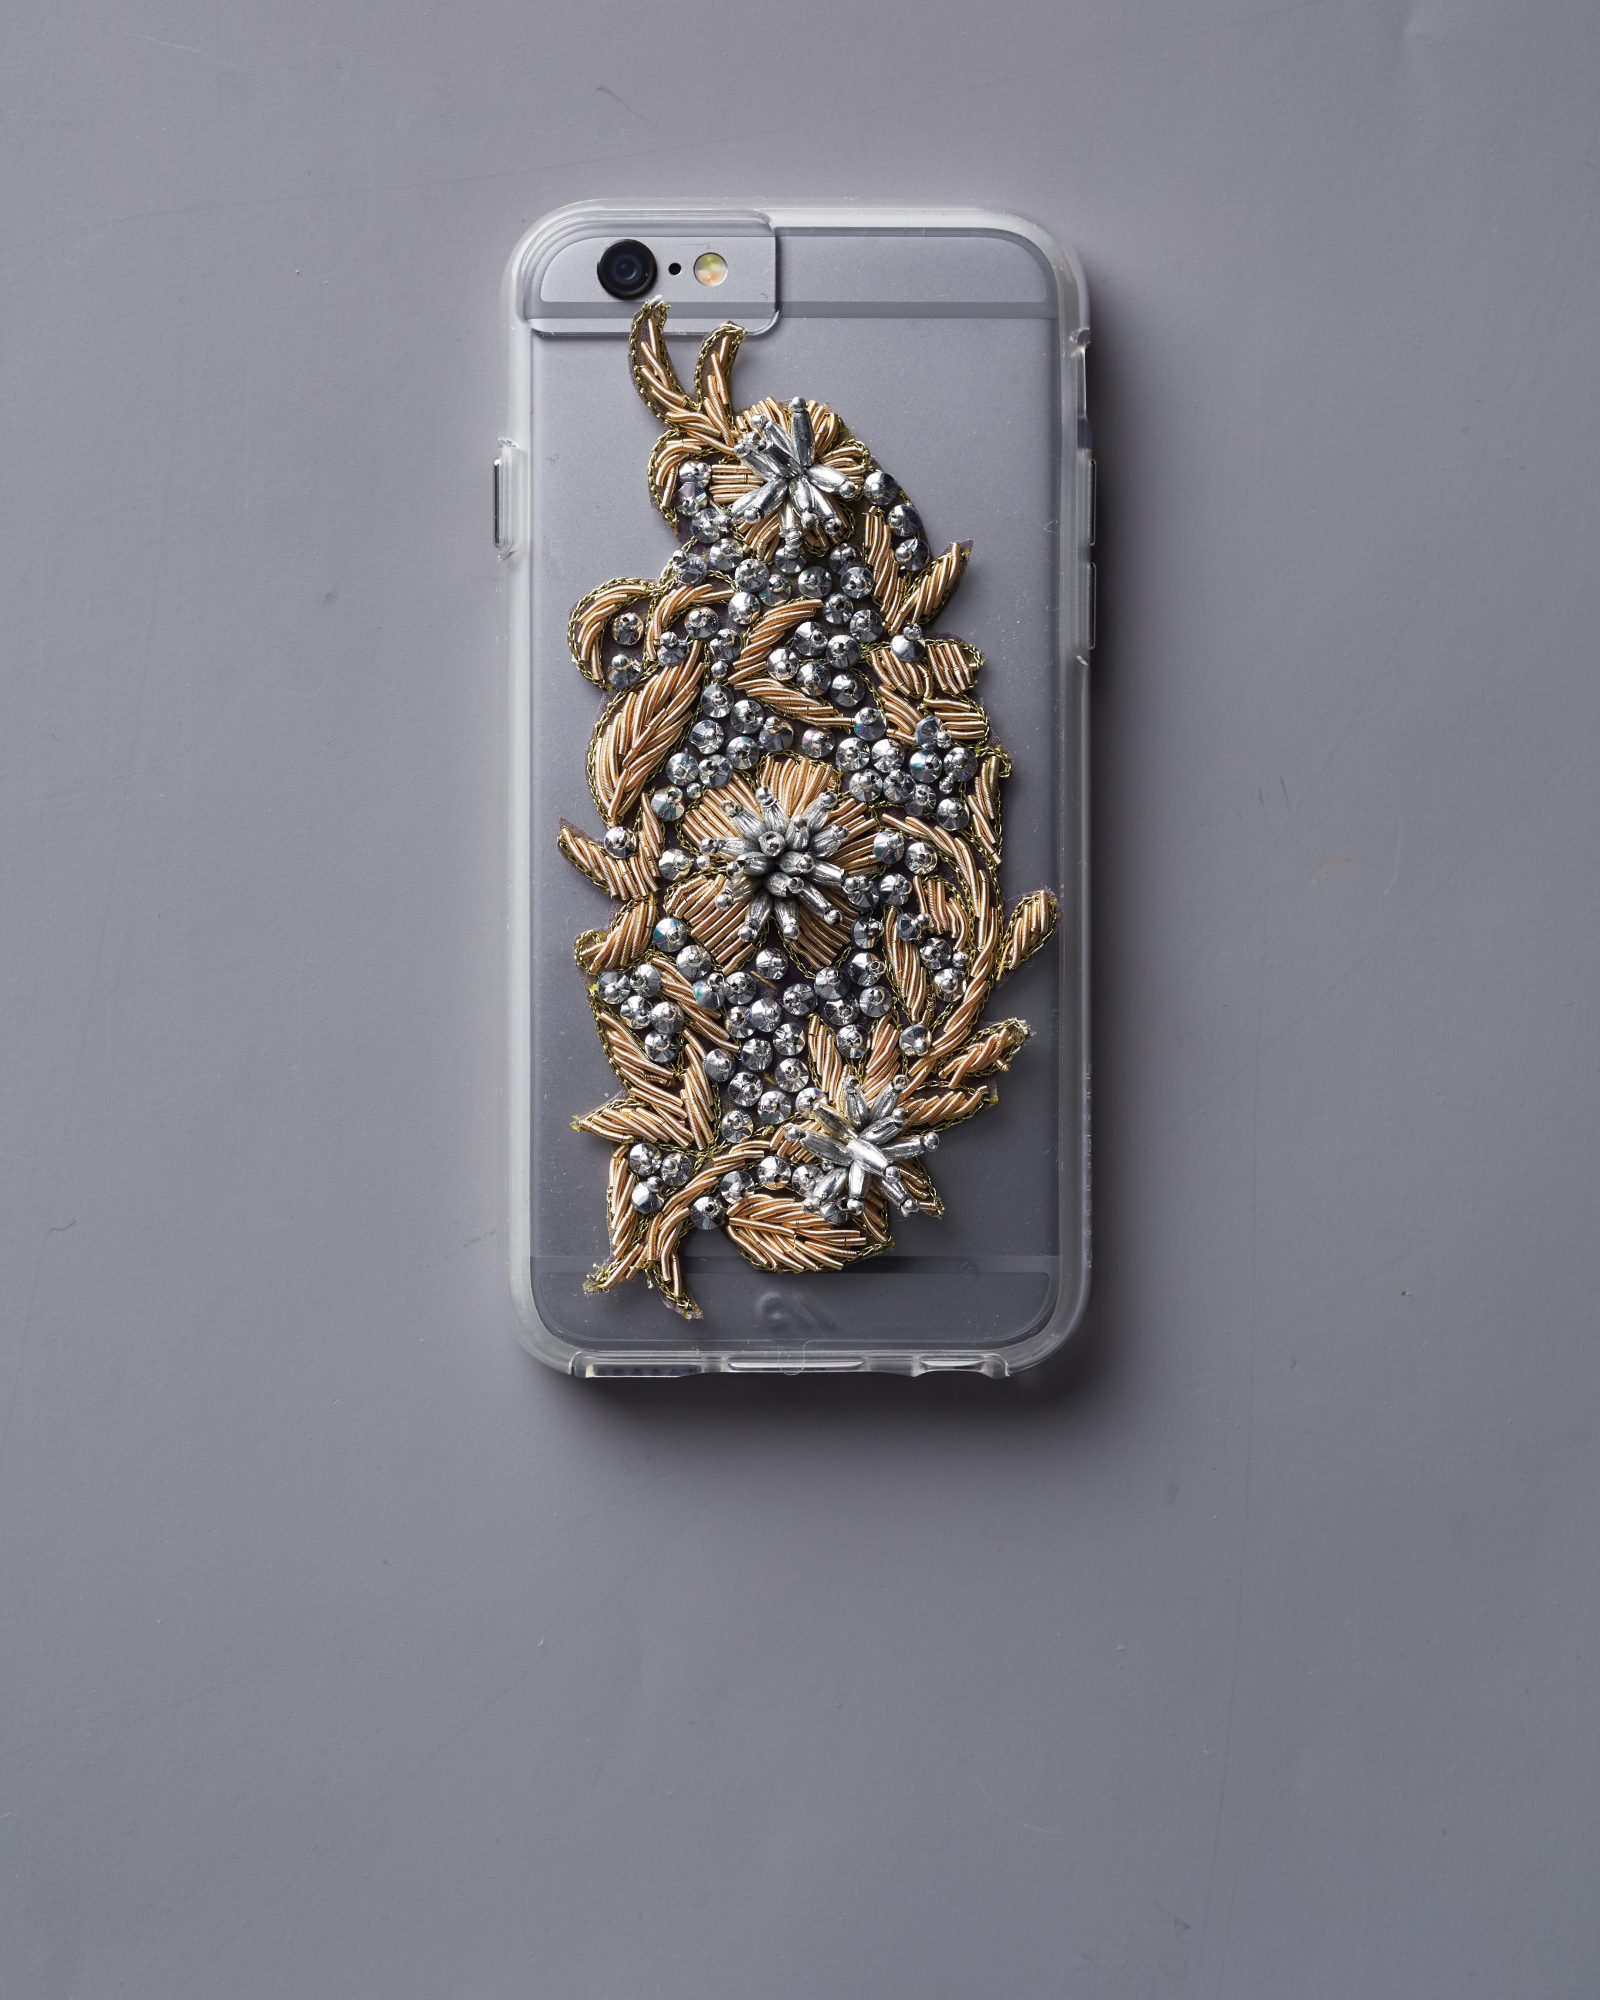 Transform an everyday must-have into a stylish accessory by adding beaded bullion appliqués to a clear phone case. Just make sure to grab cases that fit your 'maids' phones!